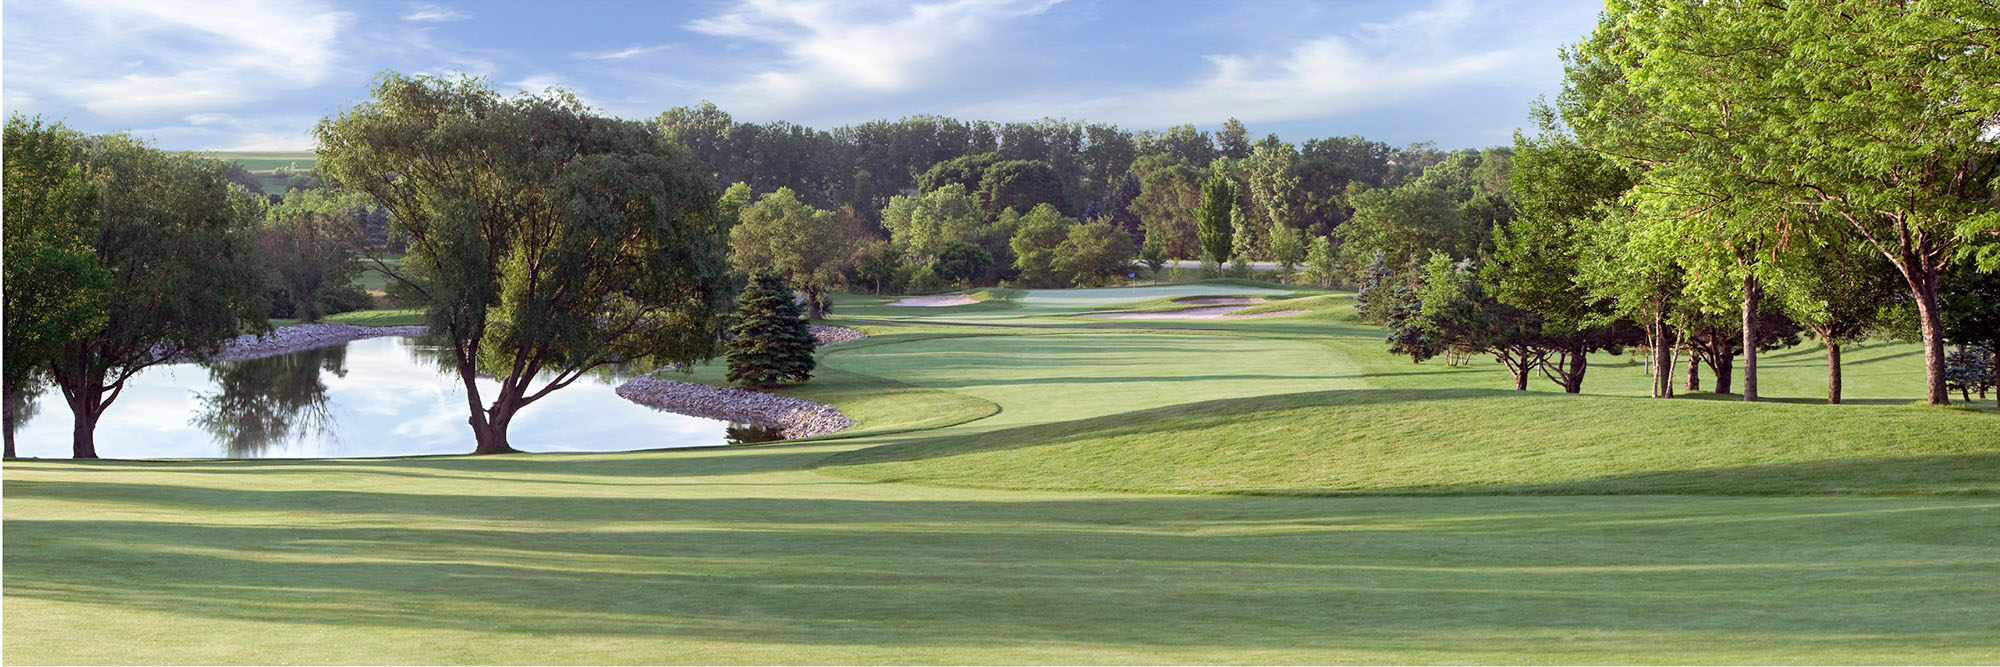 Golf Course Image - Indian Creek Red Feather No. 1